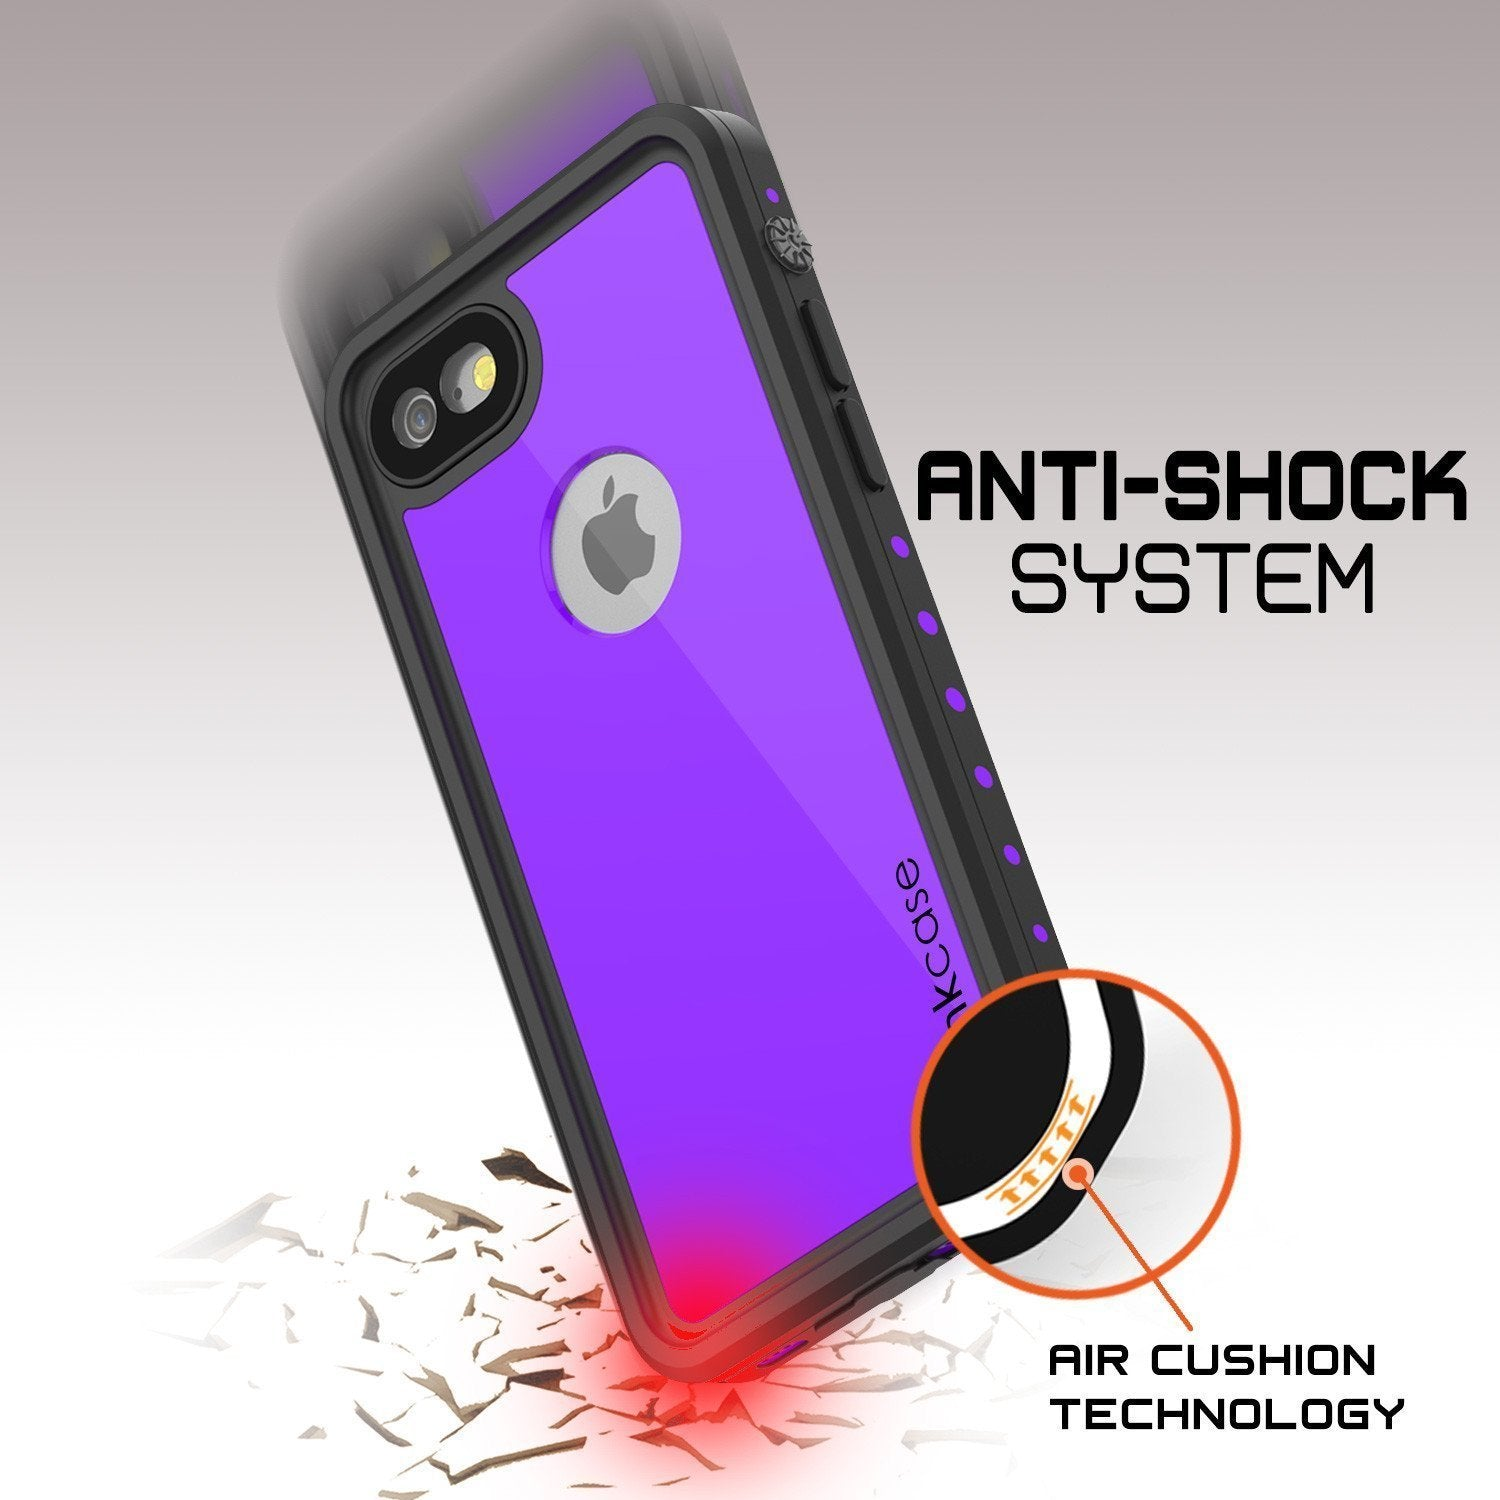 iPhone 8 Waterproof Case, Punkcase [Purple] [StudStar Series] [Slim Fit][IP68 Certified]  [Dirtproof] [Snowproof]